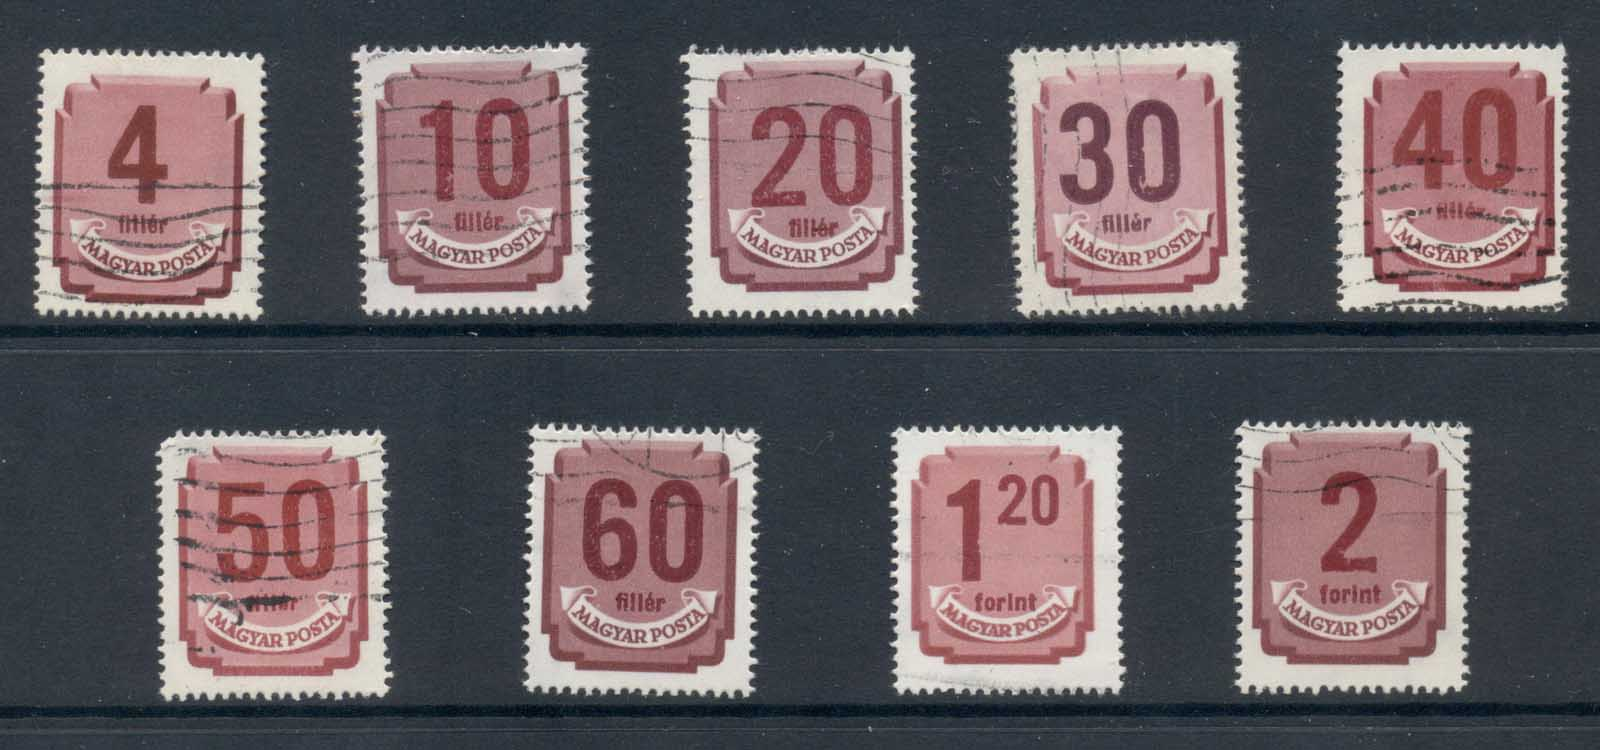 Hungary 1946-51 Postage Dues Asst FU